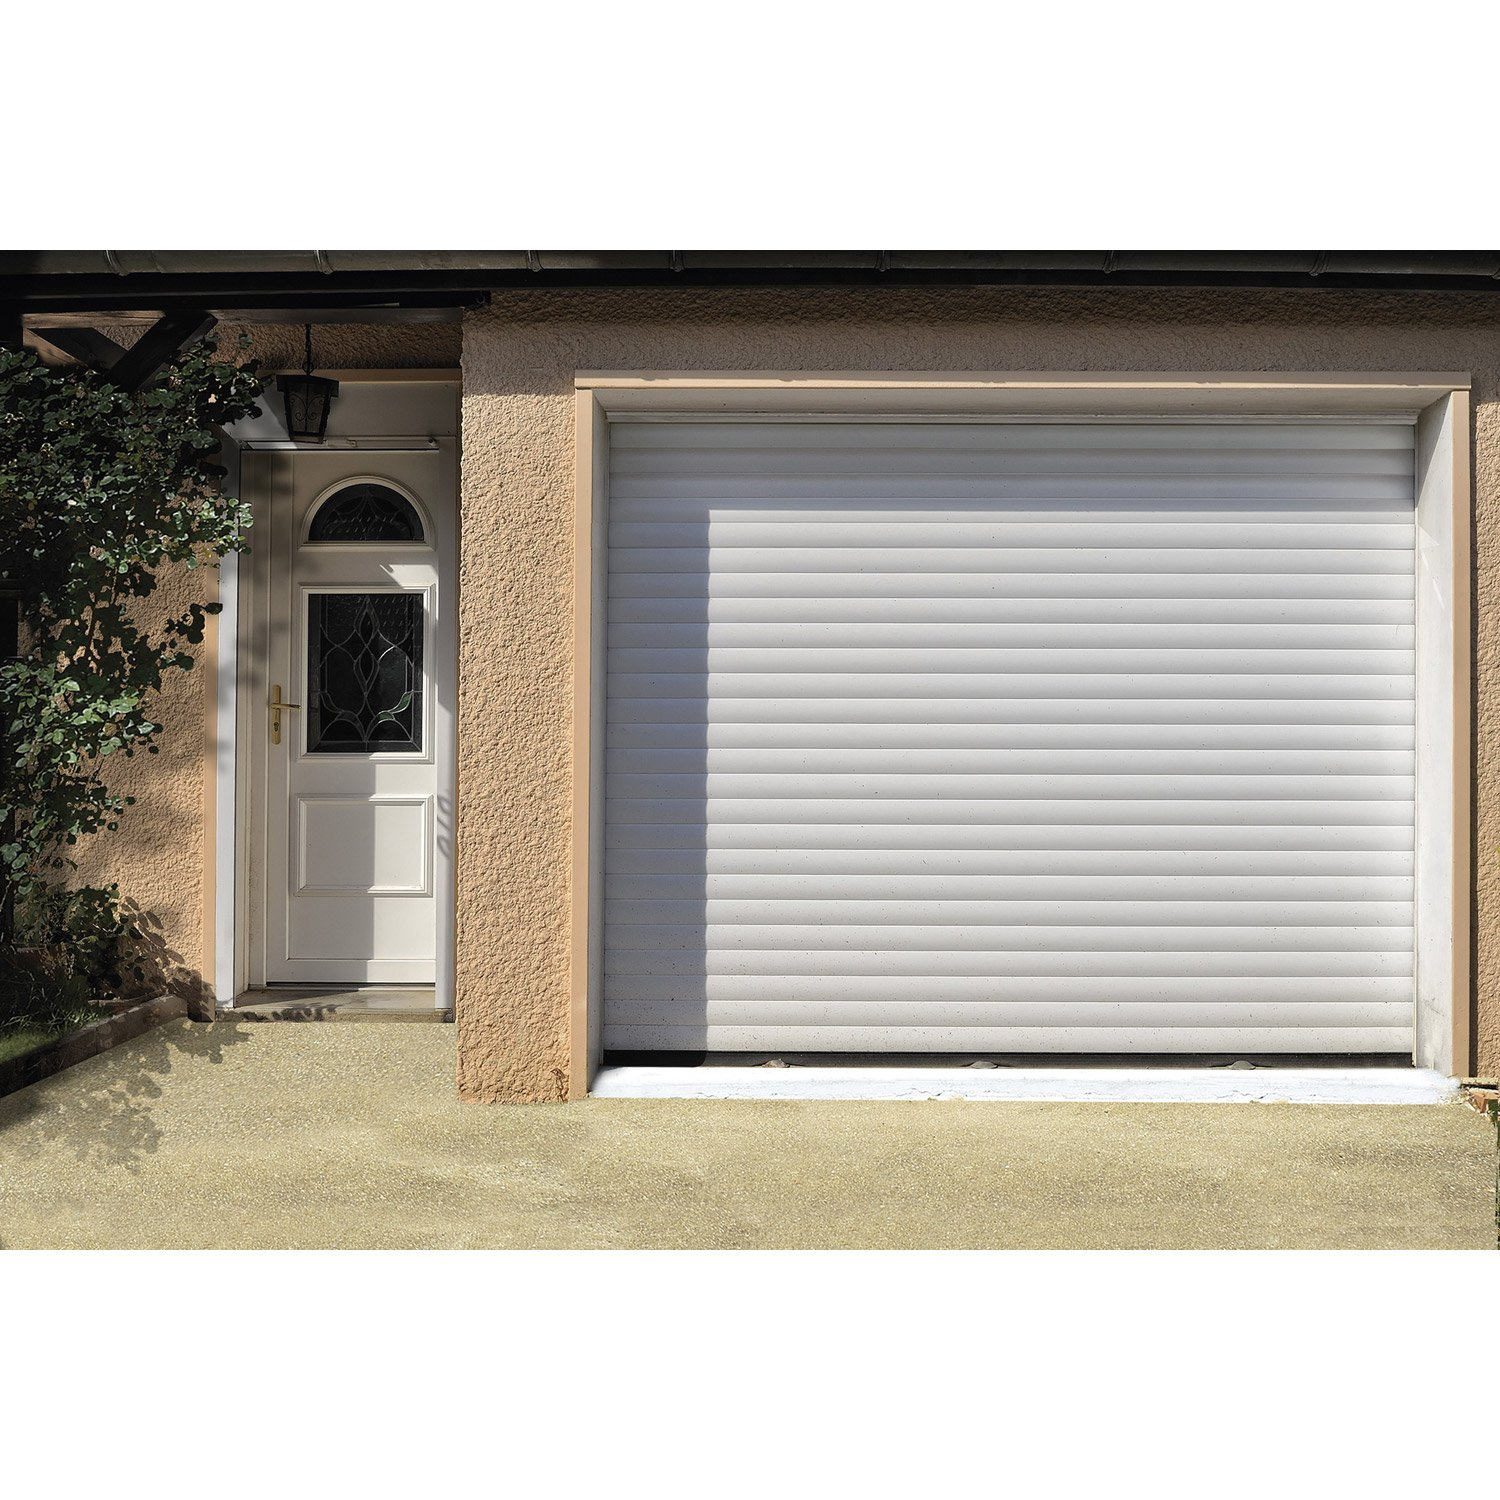 Porte de garage coulissante sur mesure leroy merlin isolation id es - Porte garage sur mesure leroy merlin ...